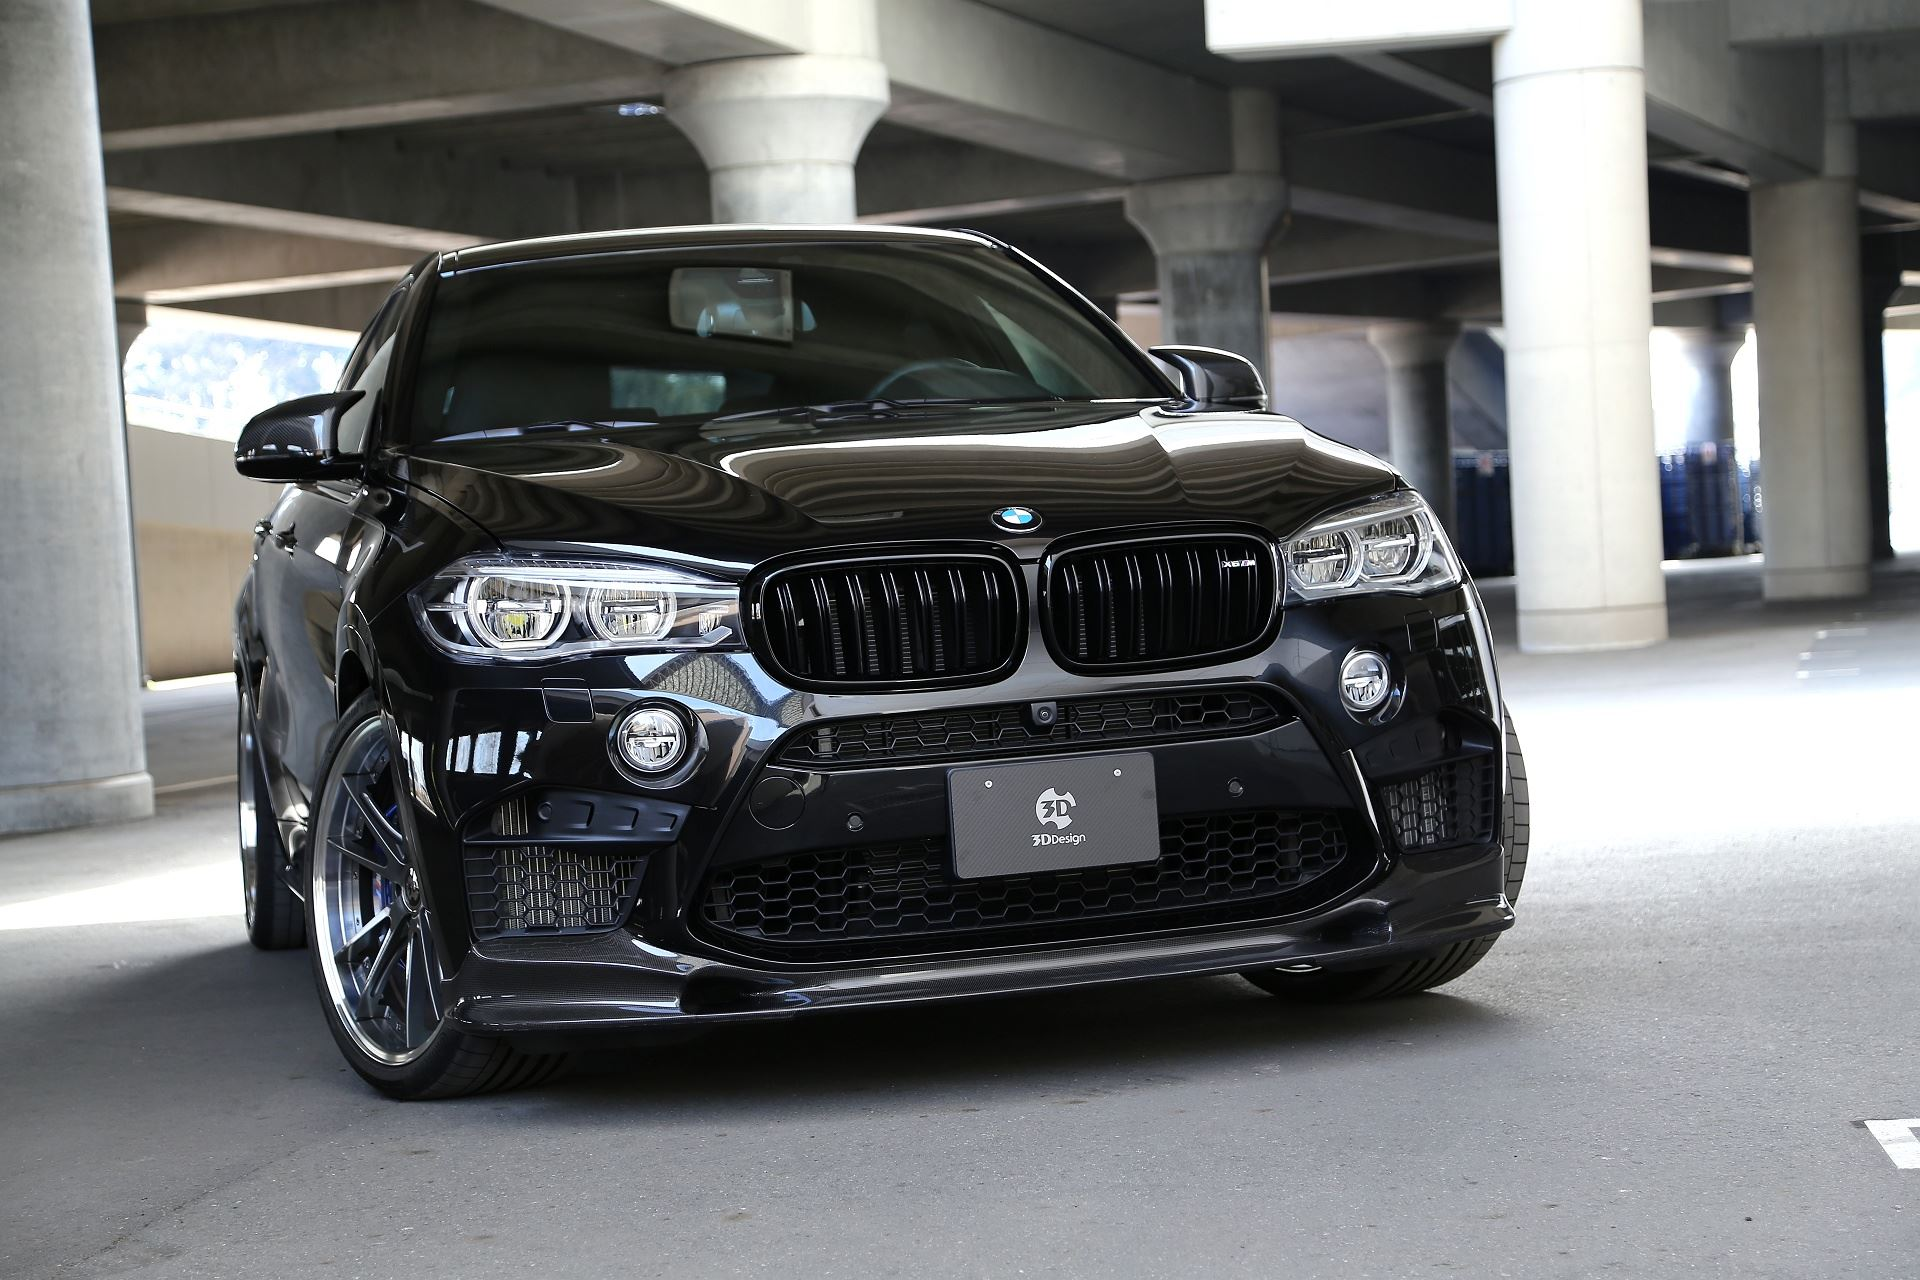 3d Design Unveils A Tuning Program For The Bmw X6 M